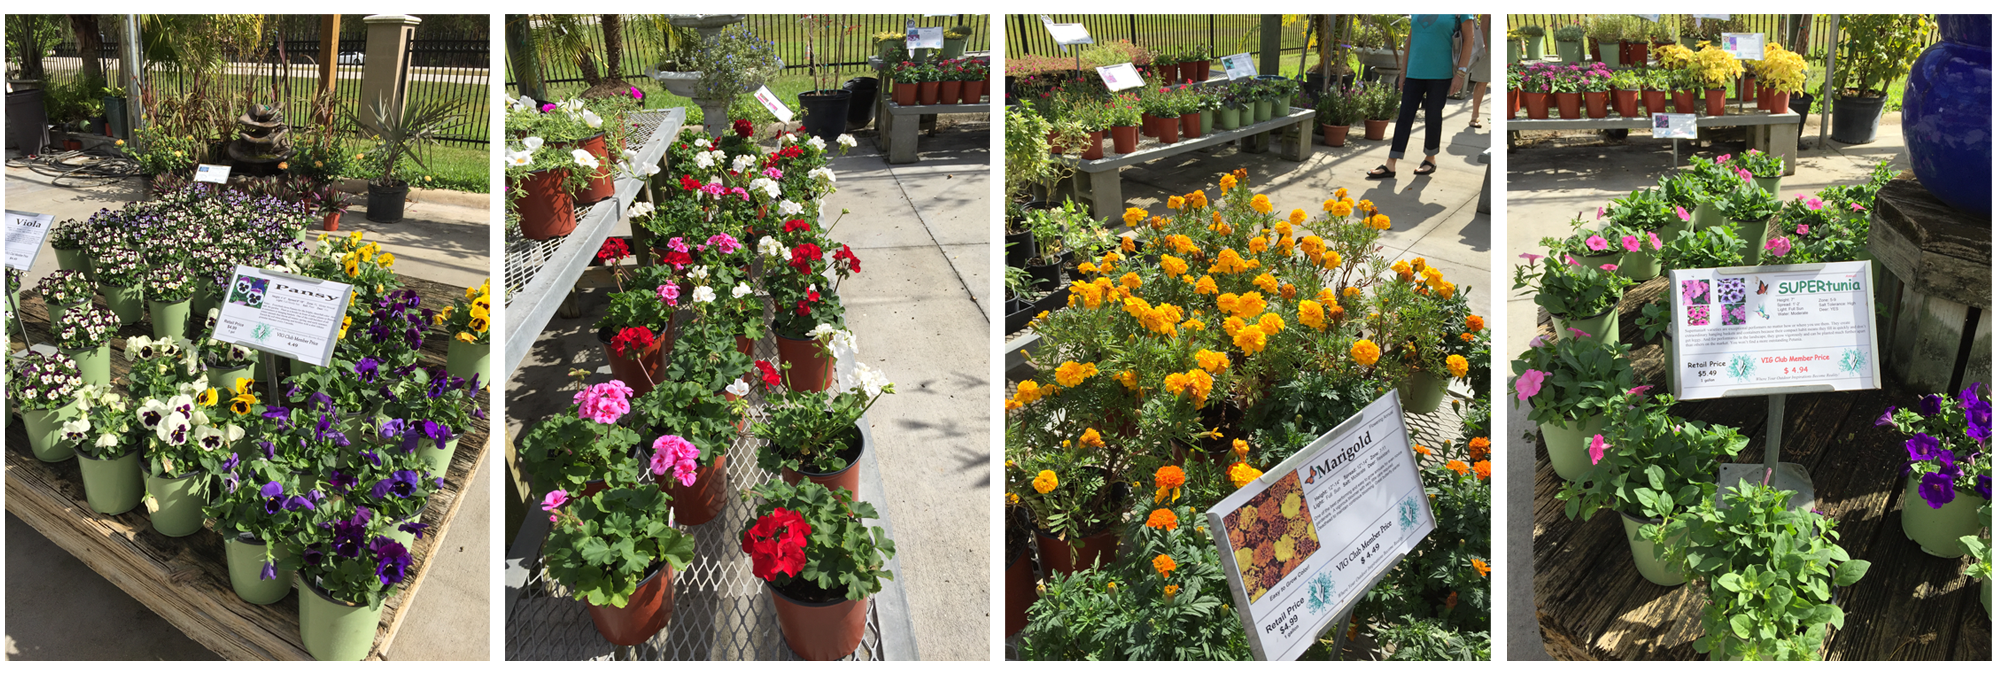 Winter annuals are arriving verdego want some pops of color with beautiful flowers to beautify your home as the holidays approach try adding some winter annualsf pansies violas marigolds izmirmasajfo